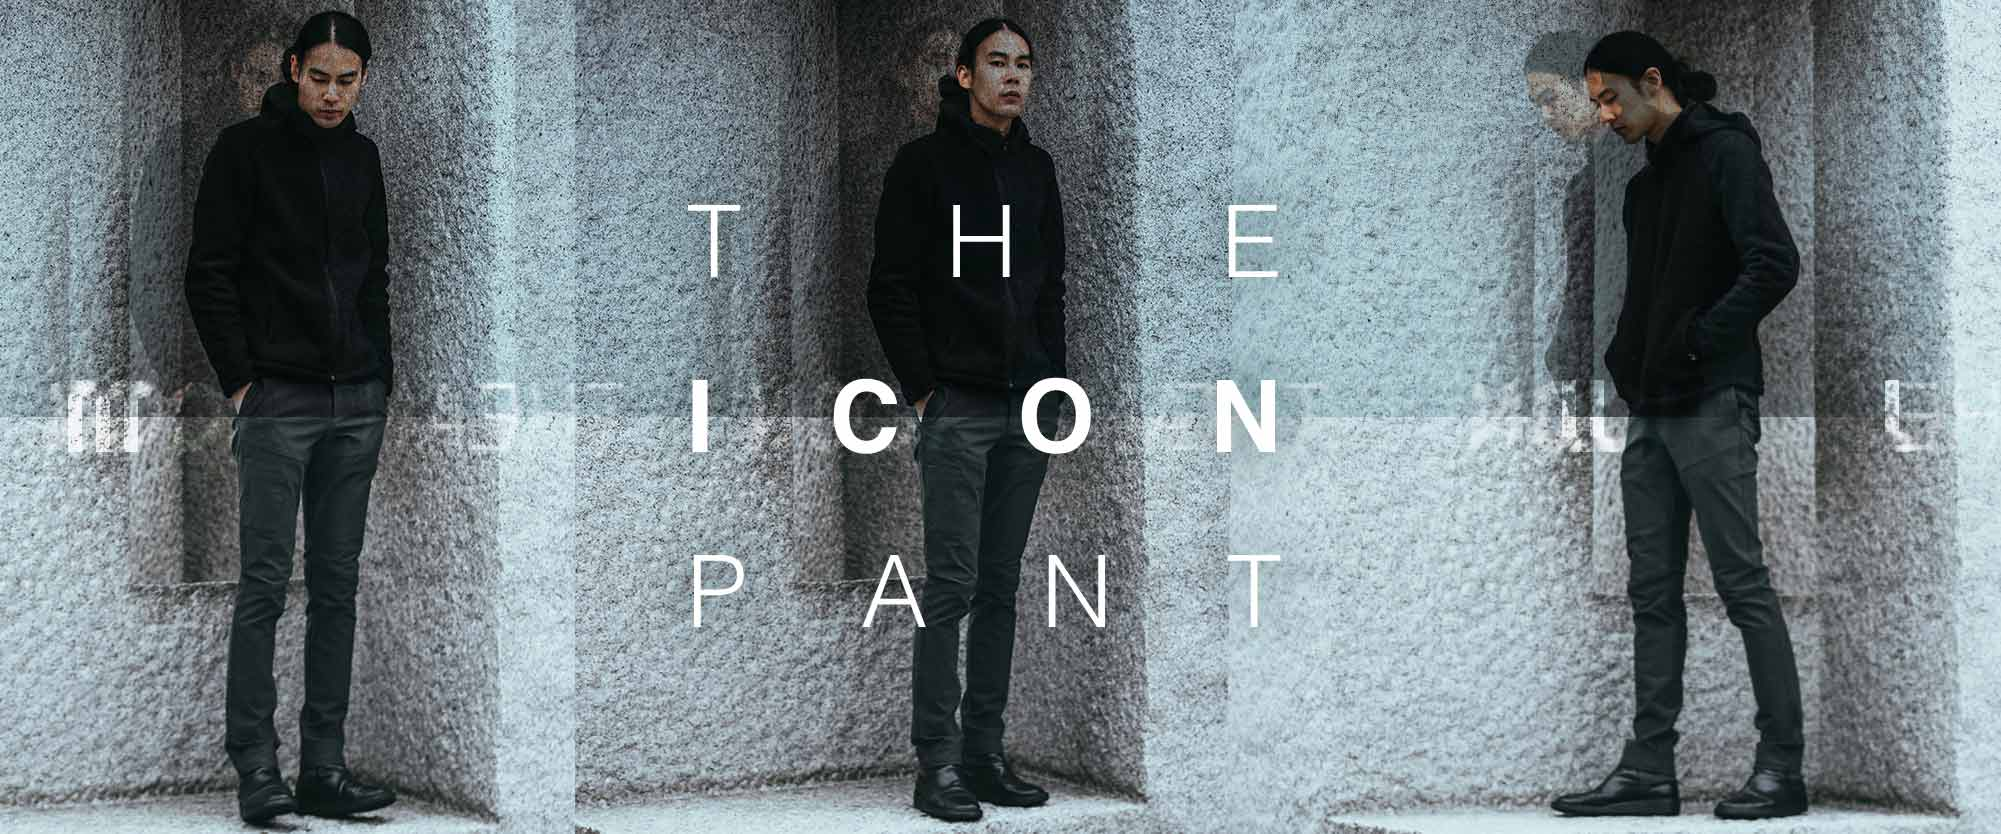 The Icon Pant